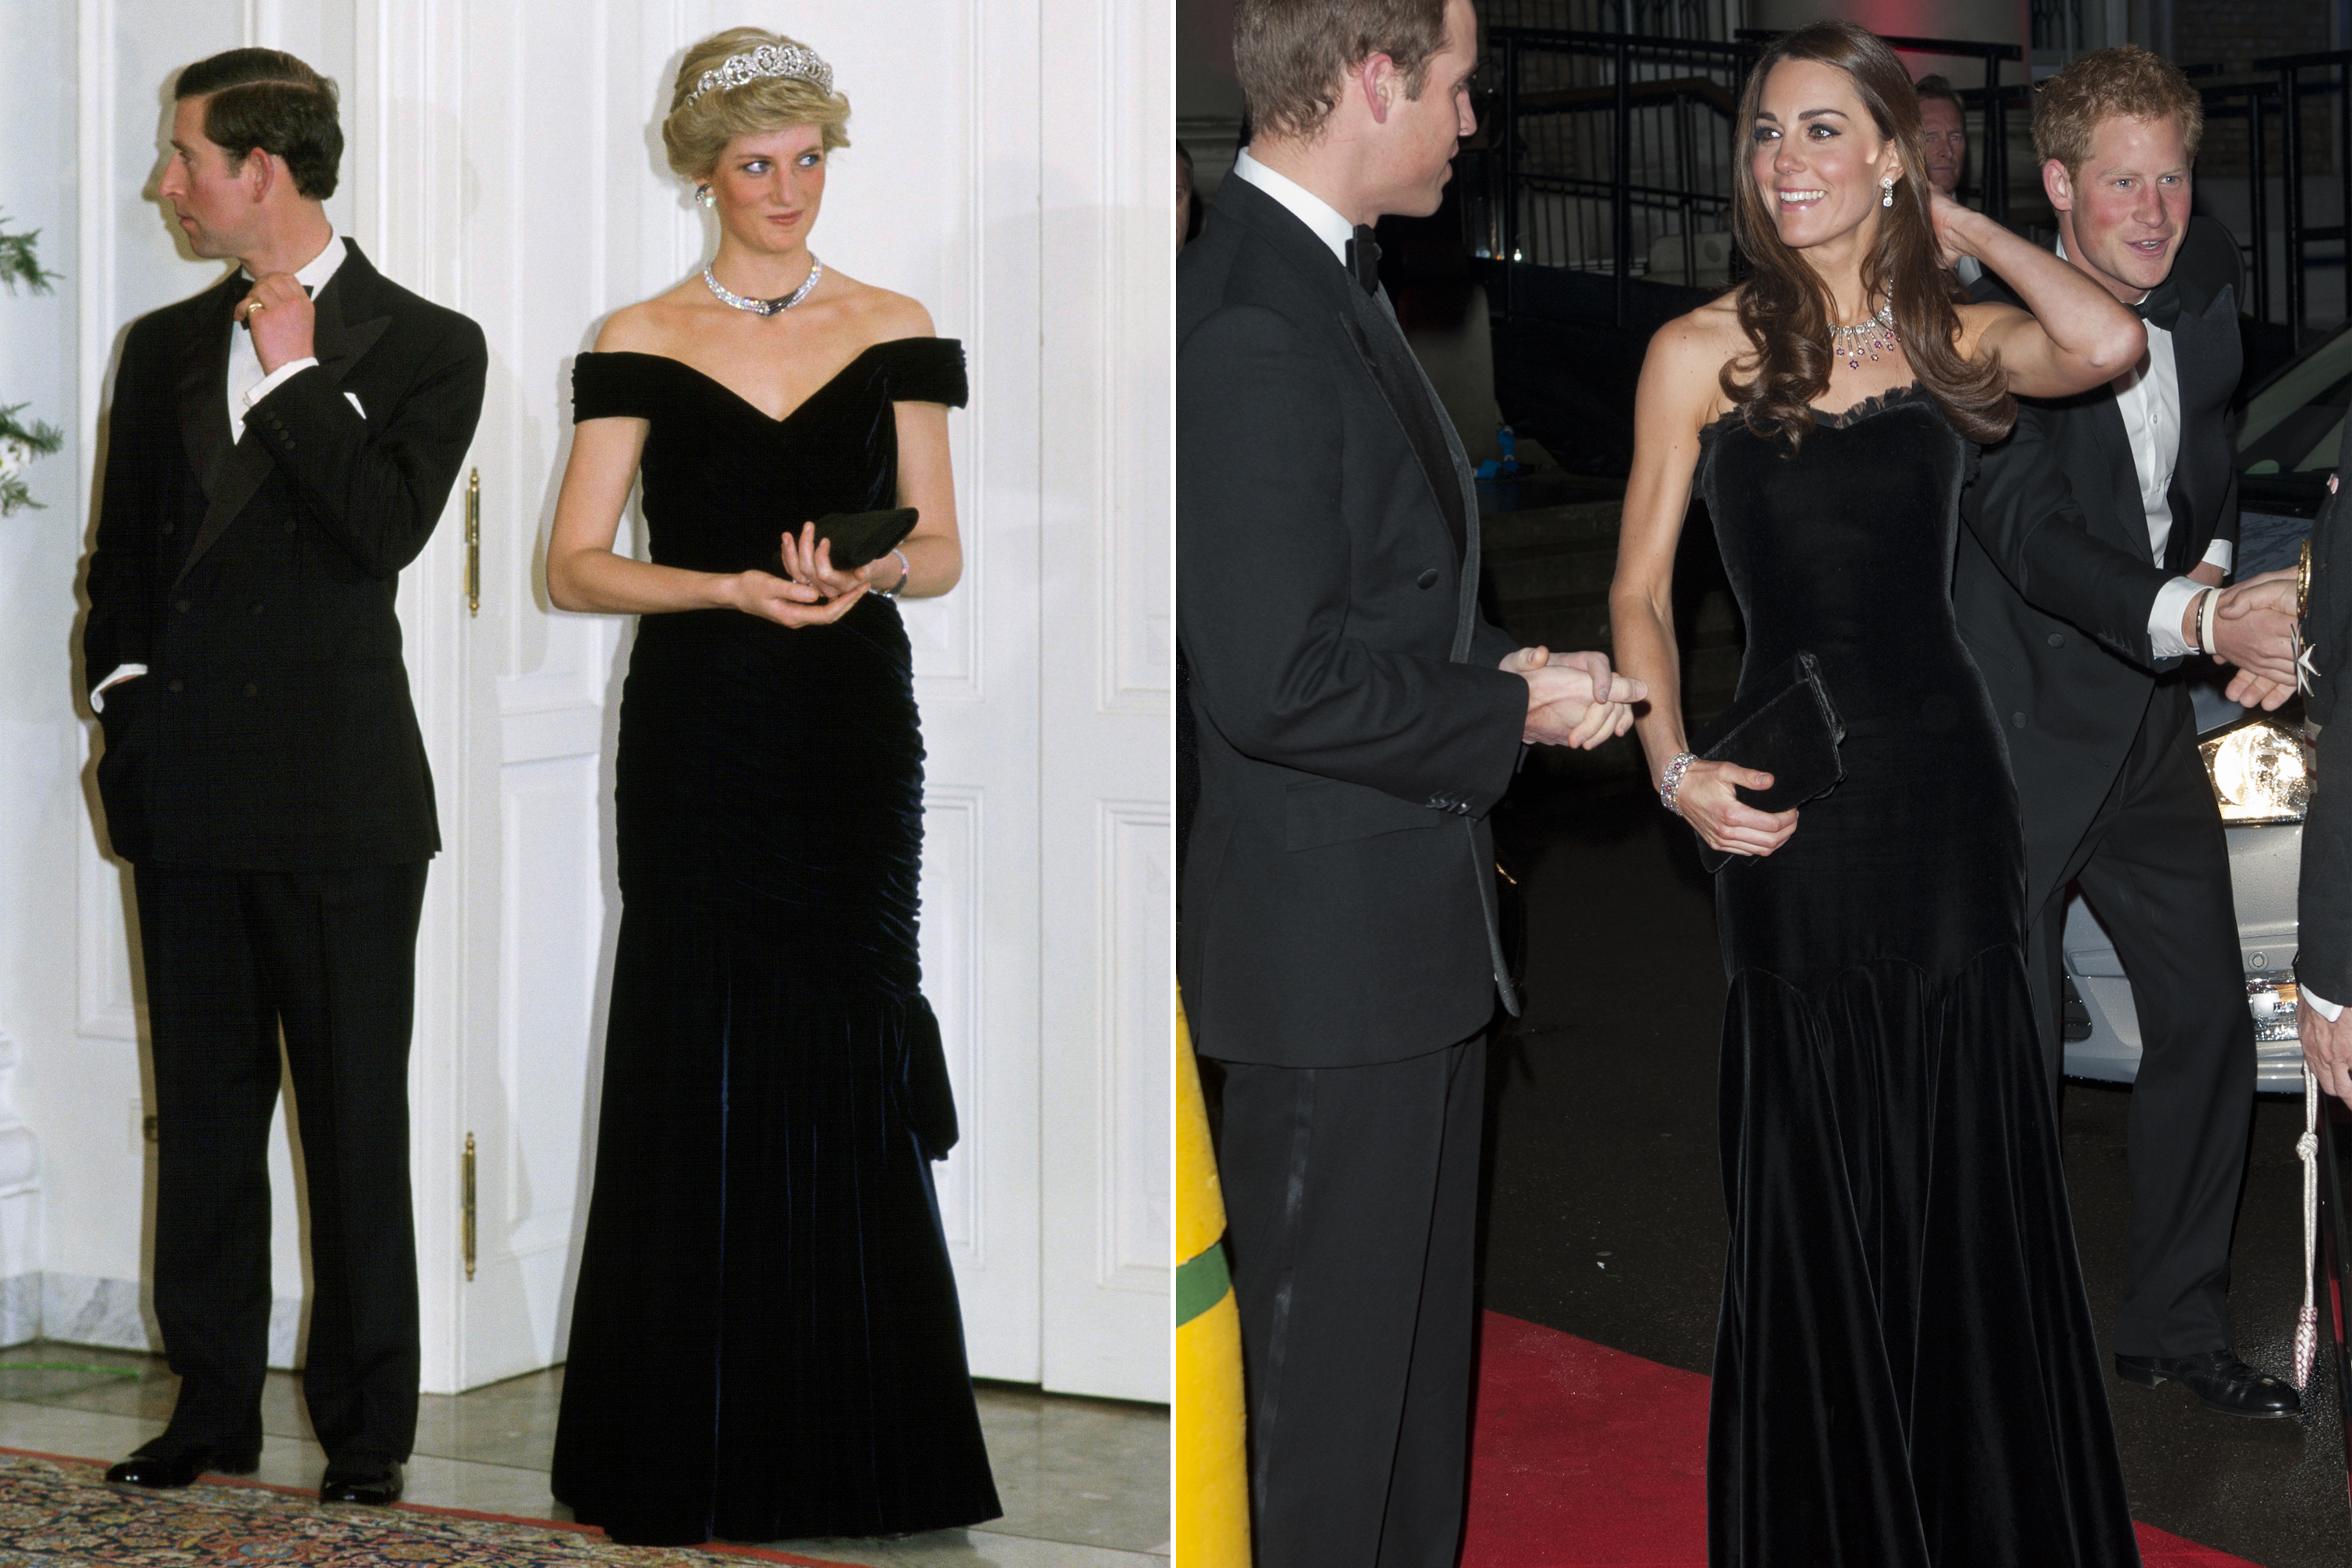 Diana wore a glamorous body-conscious black velvet gown to dance with John Travolta during a gala at the White House. For a military gala, Kate selected a similarly elegant style.